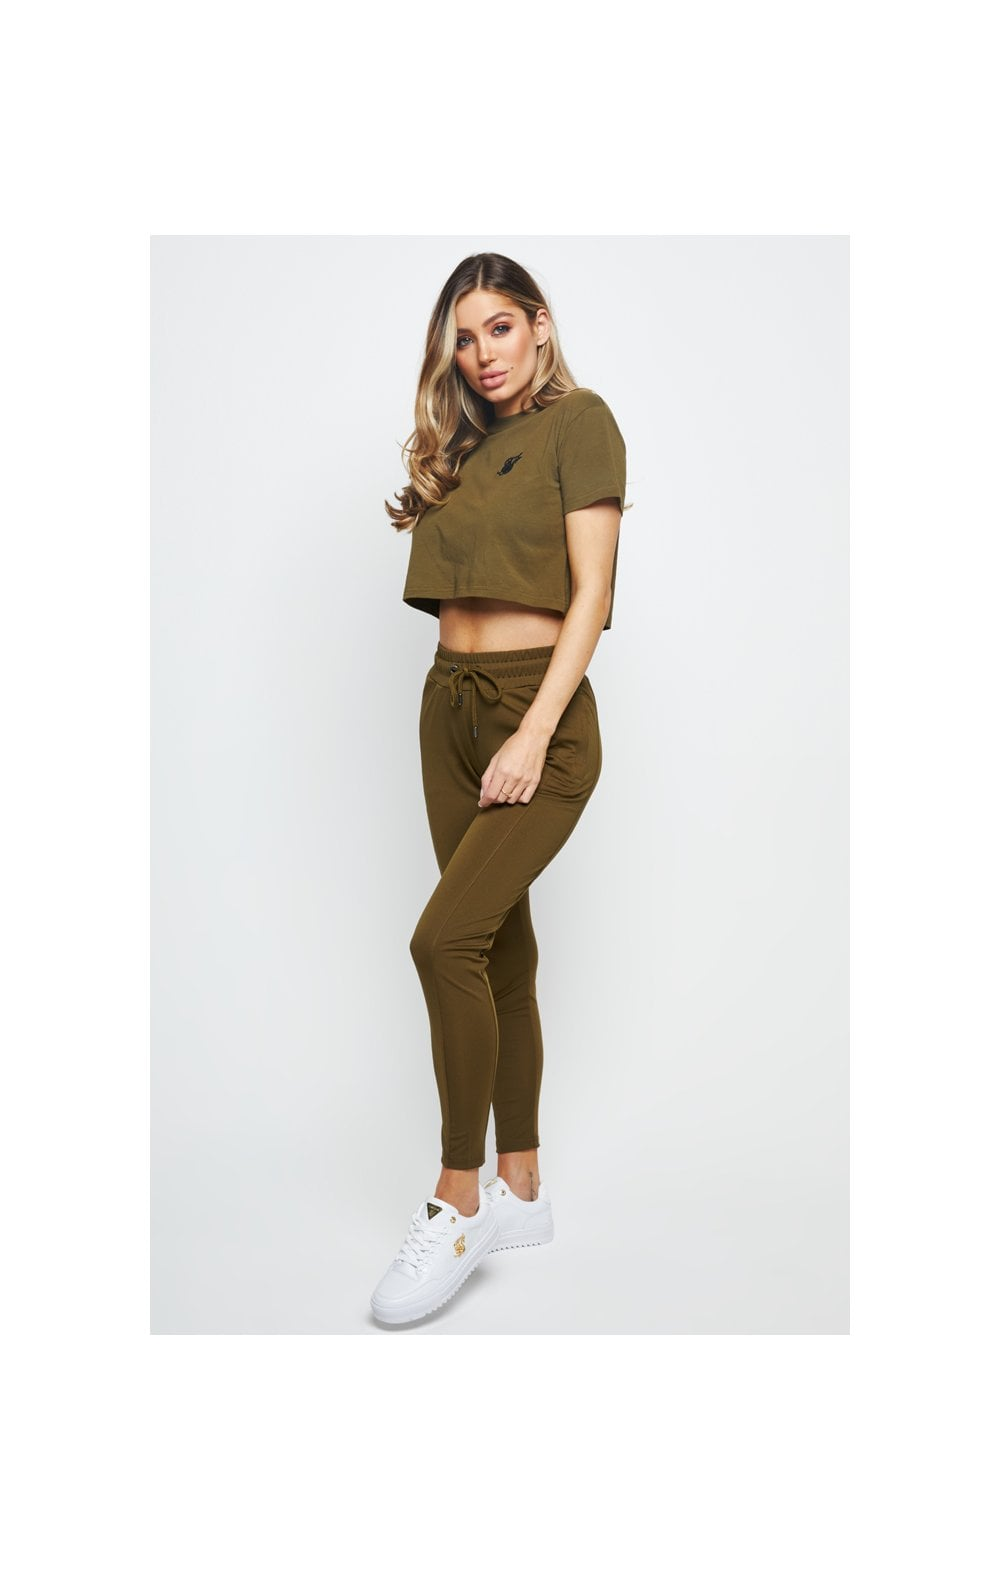 SikSilk Retro Fit Box Tee - Khaki (7)